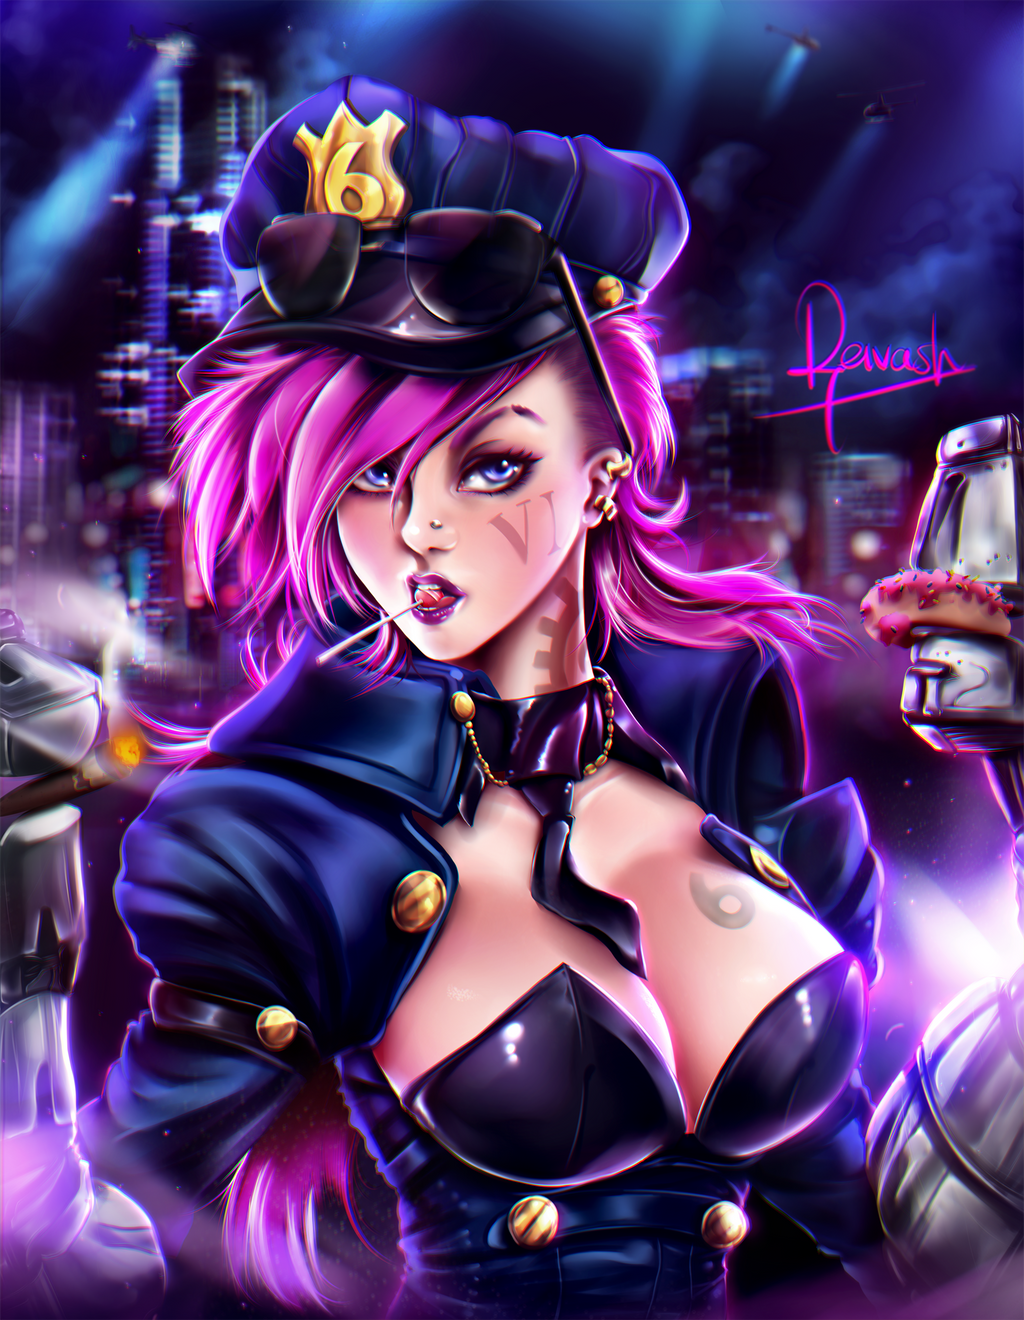 Vi - League of Legends by Reivash on DeviantArt